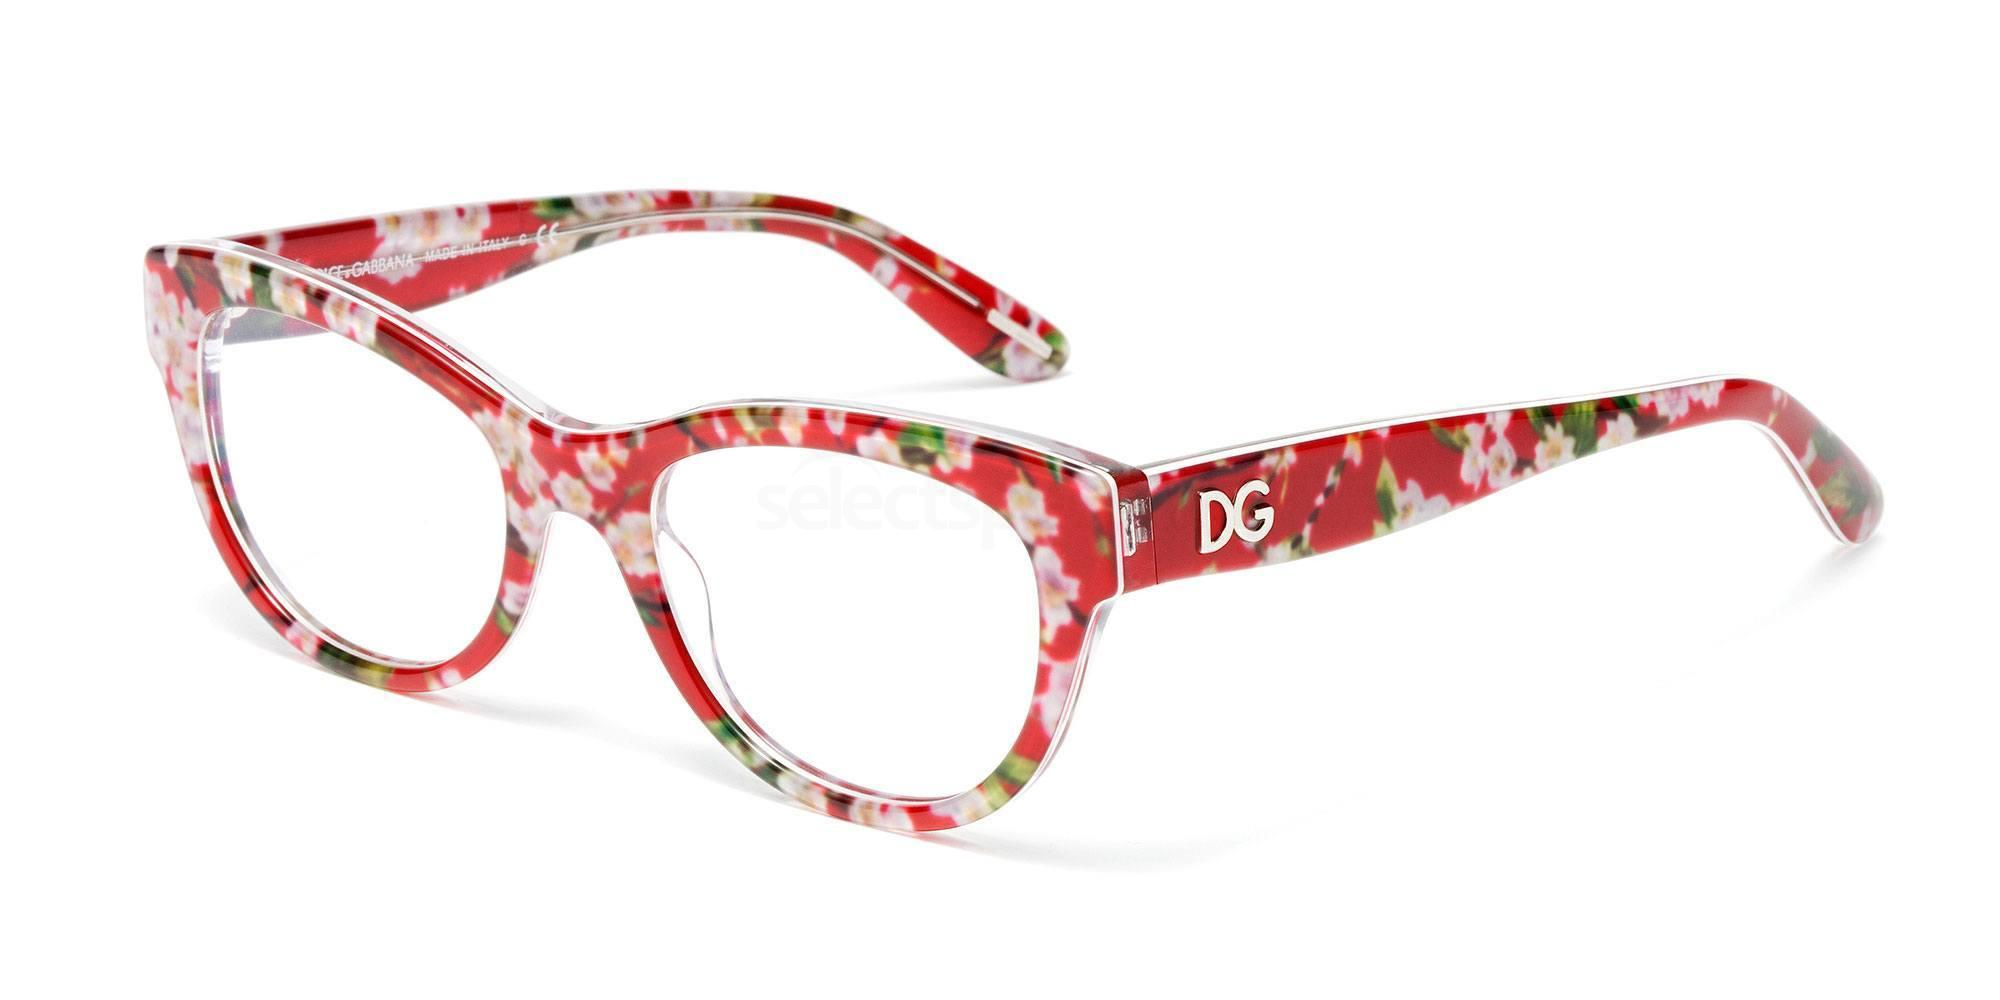 Dolce & Gabbana DG3203 ALMOND FLOWERS glasses